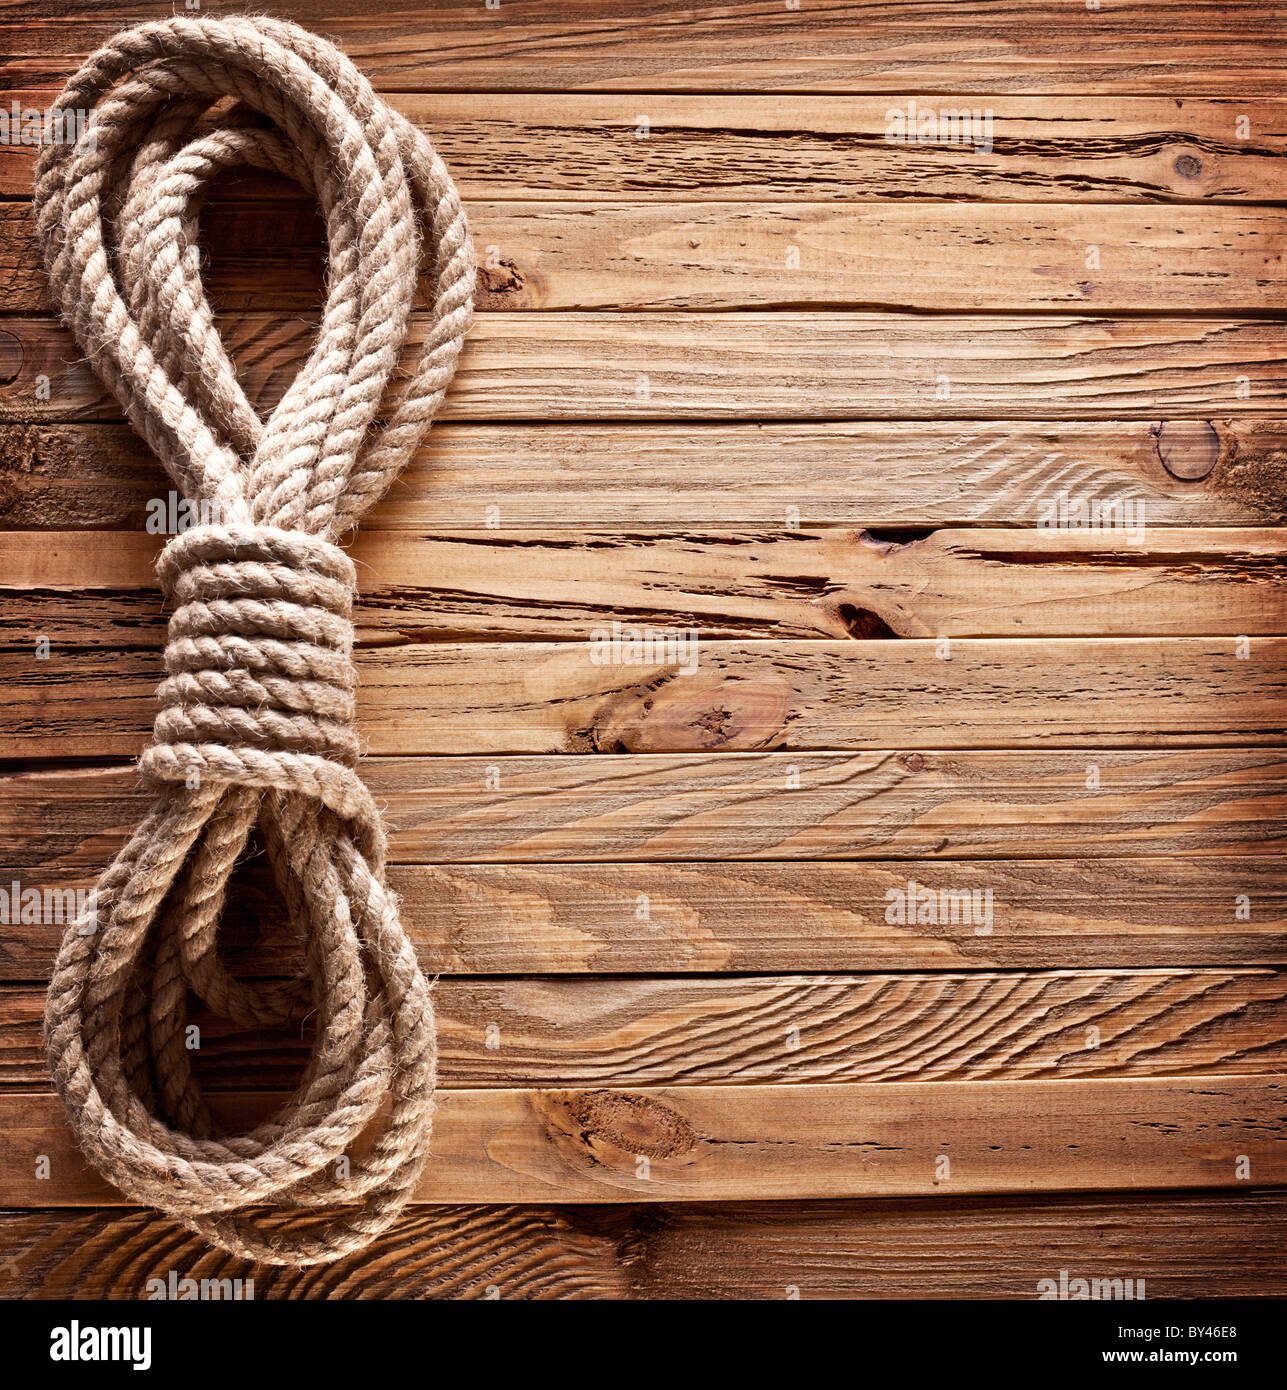 Brown Wooden Board With Rope: Image Of Old Texture Of Wooden Boards With Ship Rope Stock